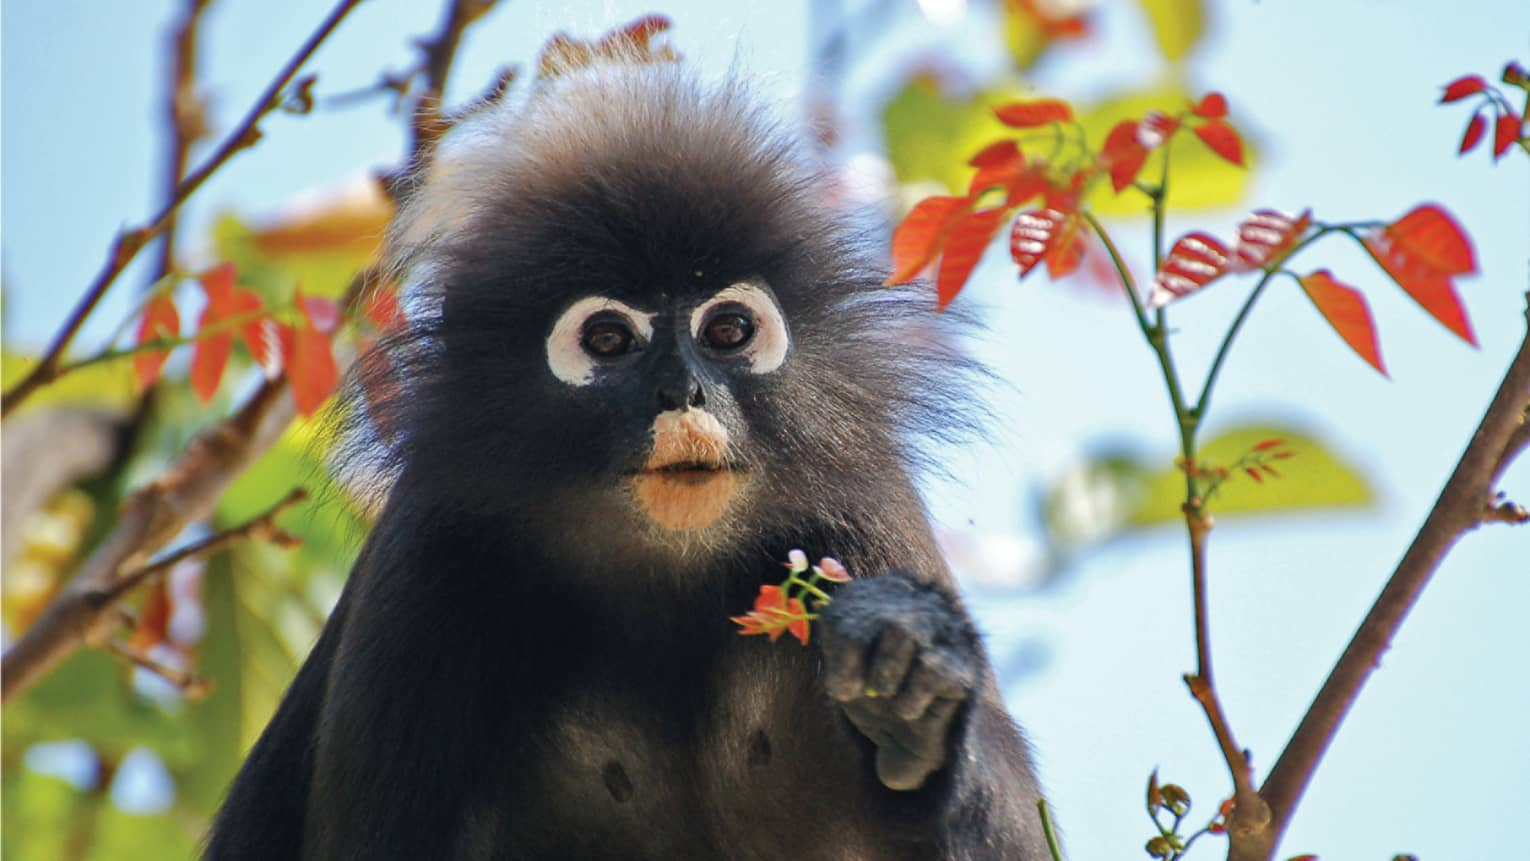 Close-up of dusty leaf monkey with wide eyes, frizzy hair around face